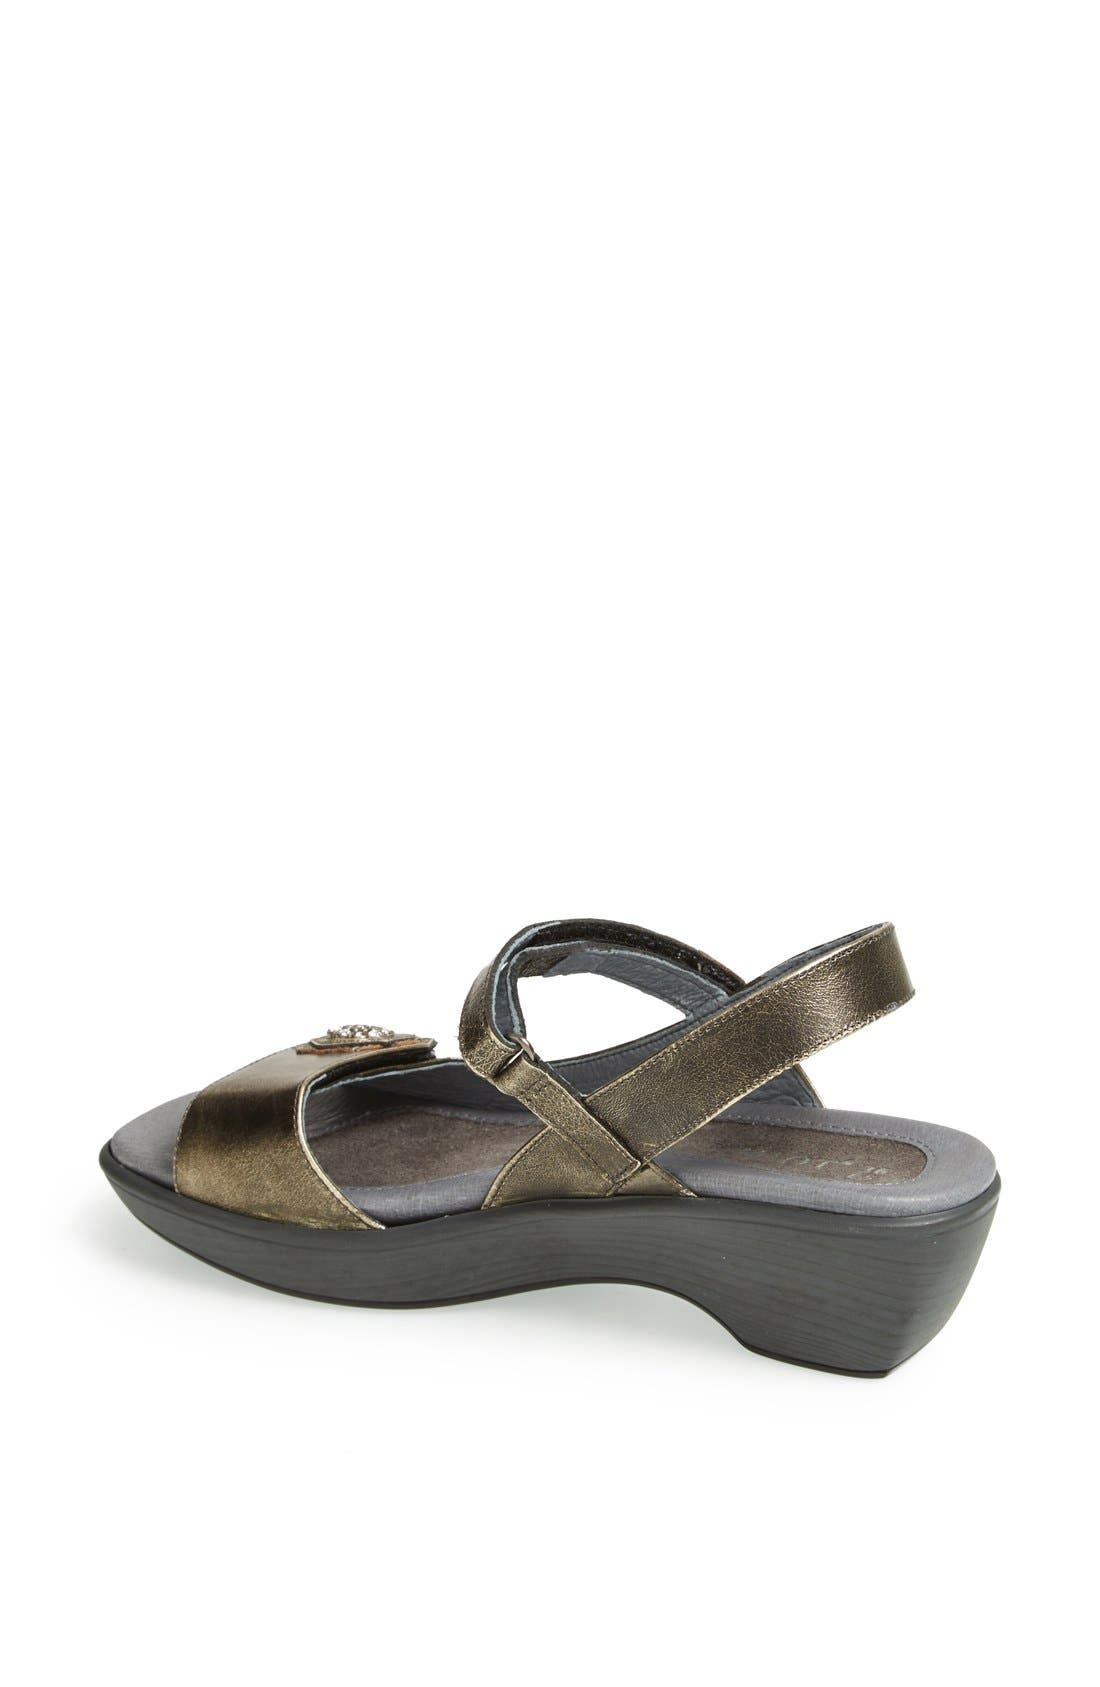 'Reserve' Sandal,                             Alternate thumbnail 2, color,                             042